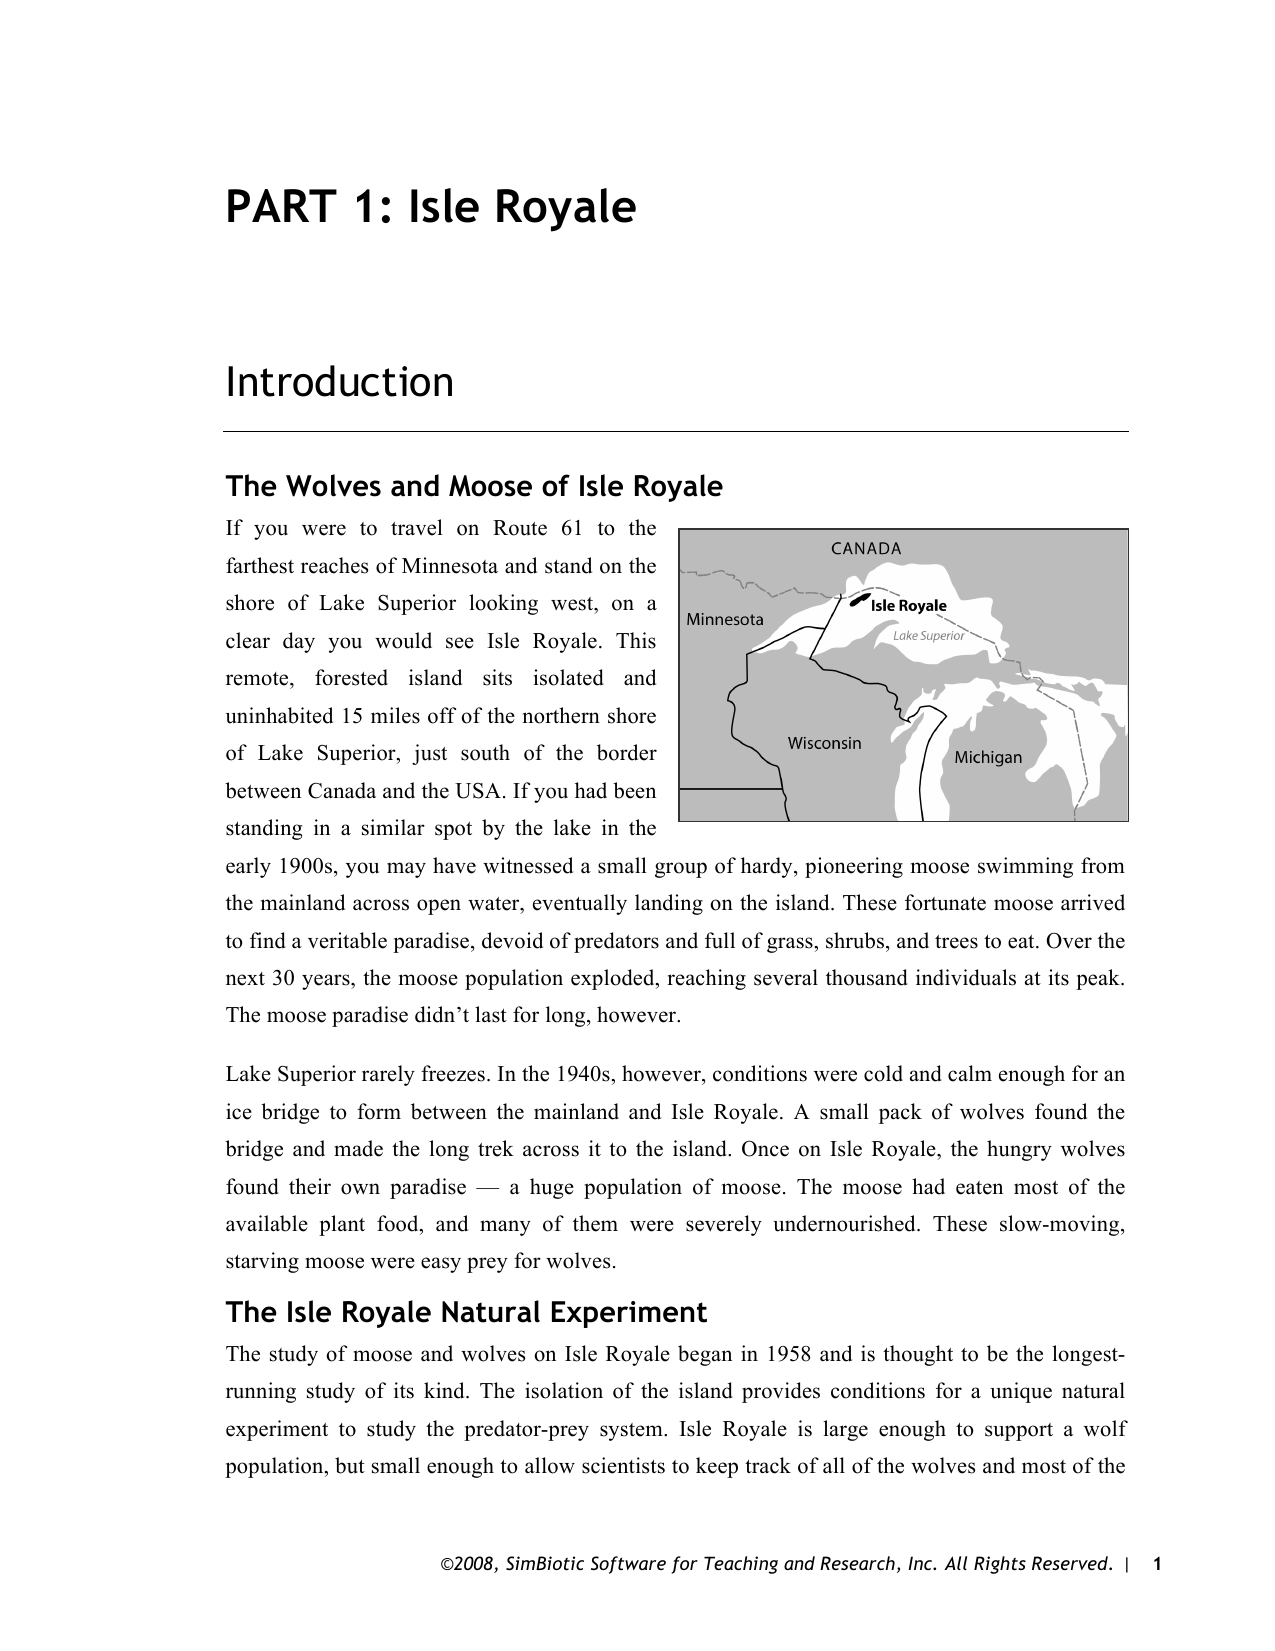 Wolf And Moose Population On Isle Royale Worksheet